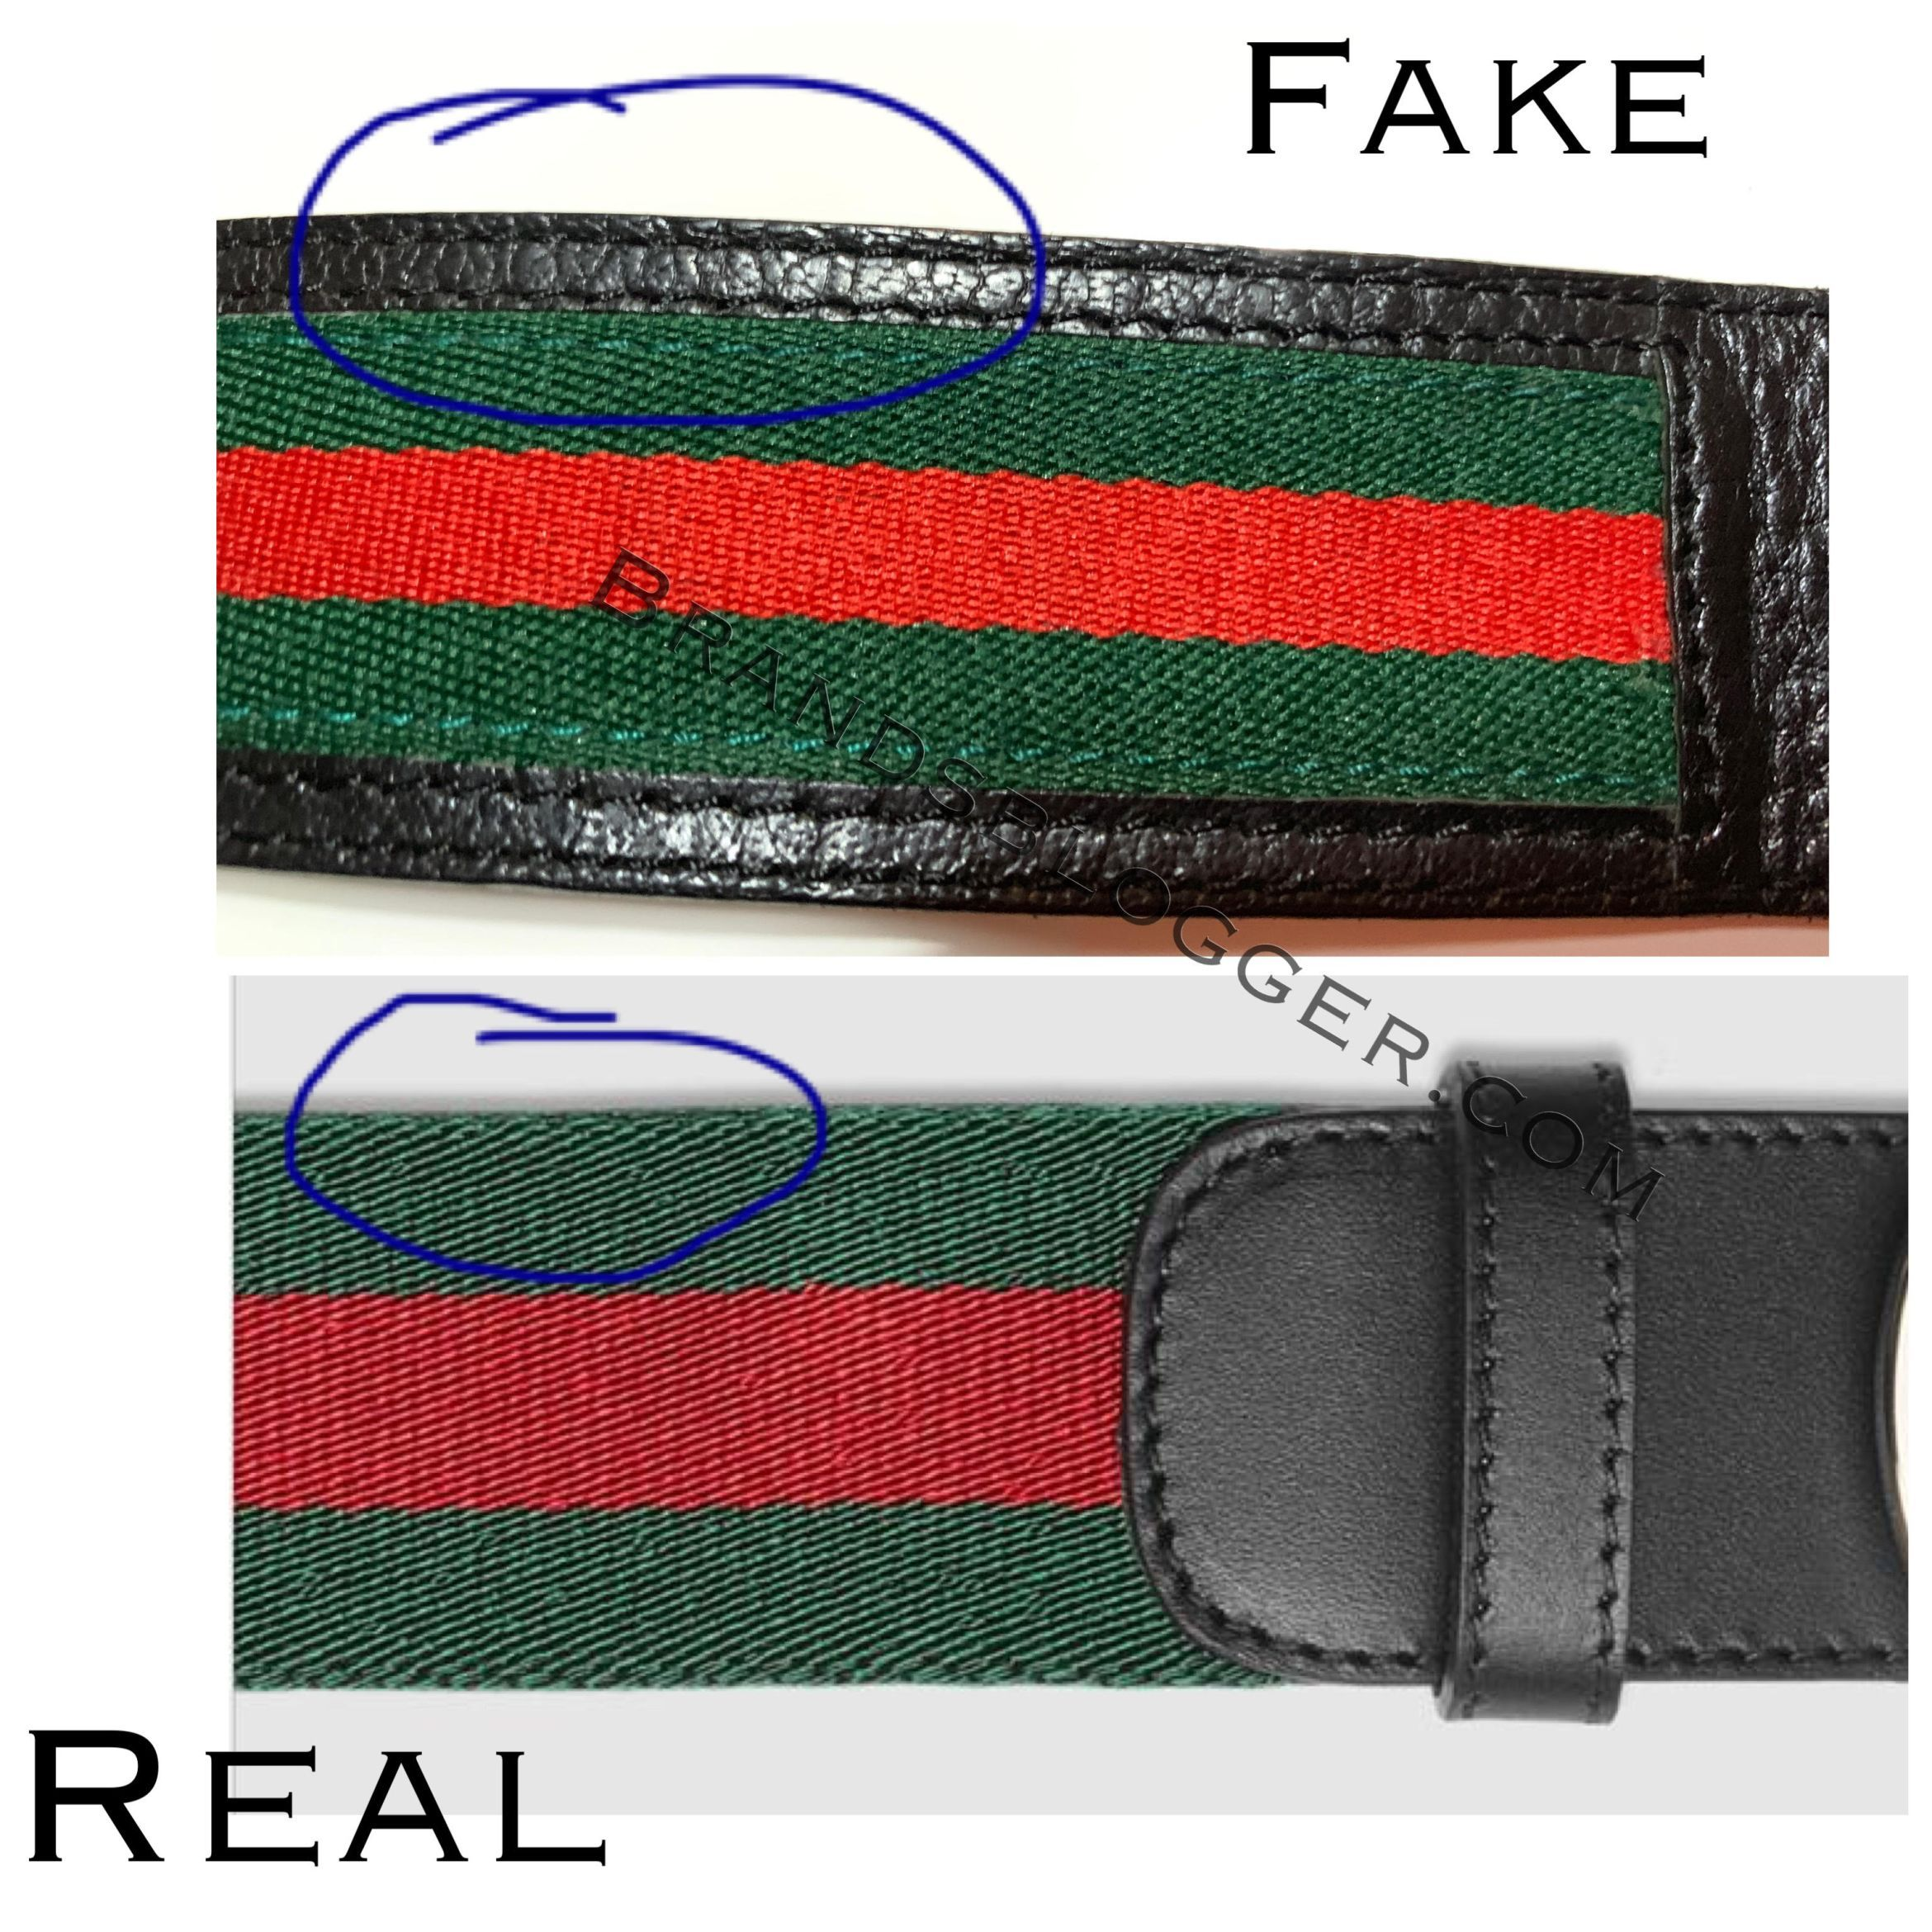 How to spot a fake gucci web belt with g buckle in 2020